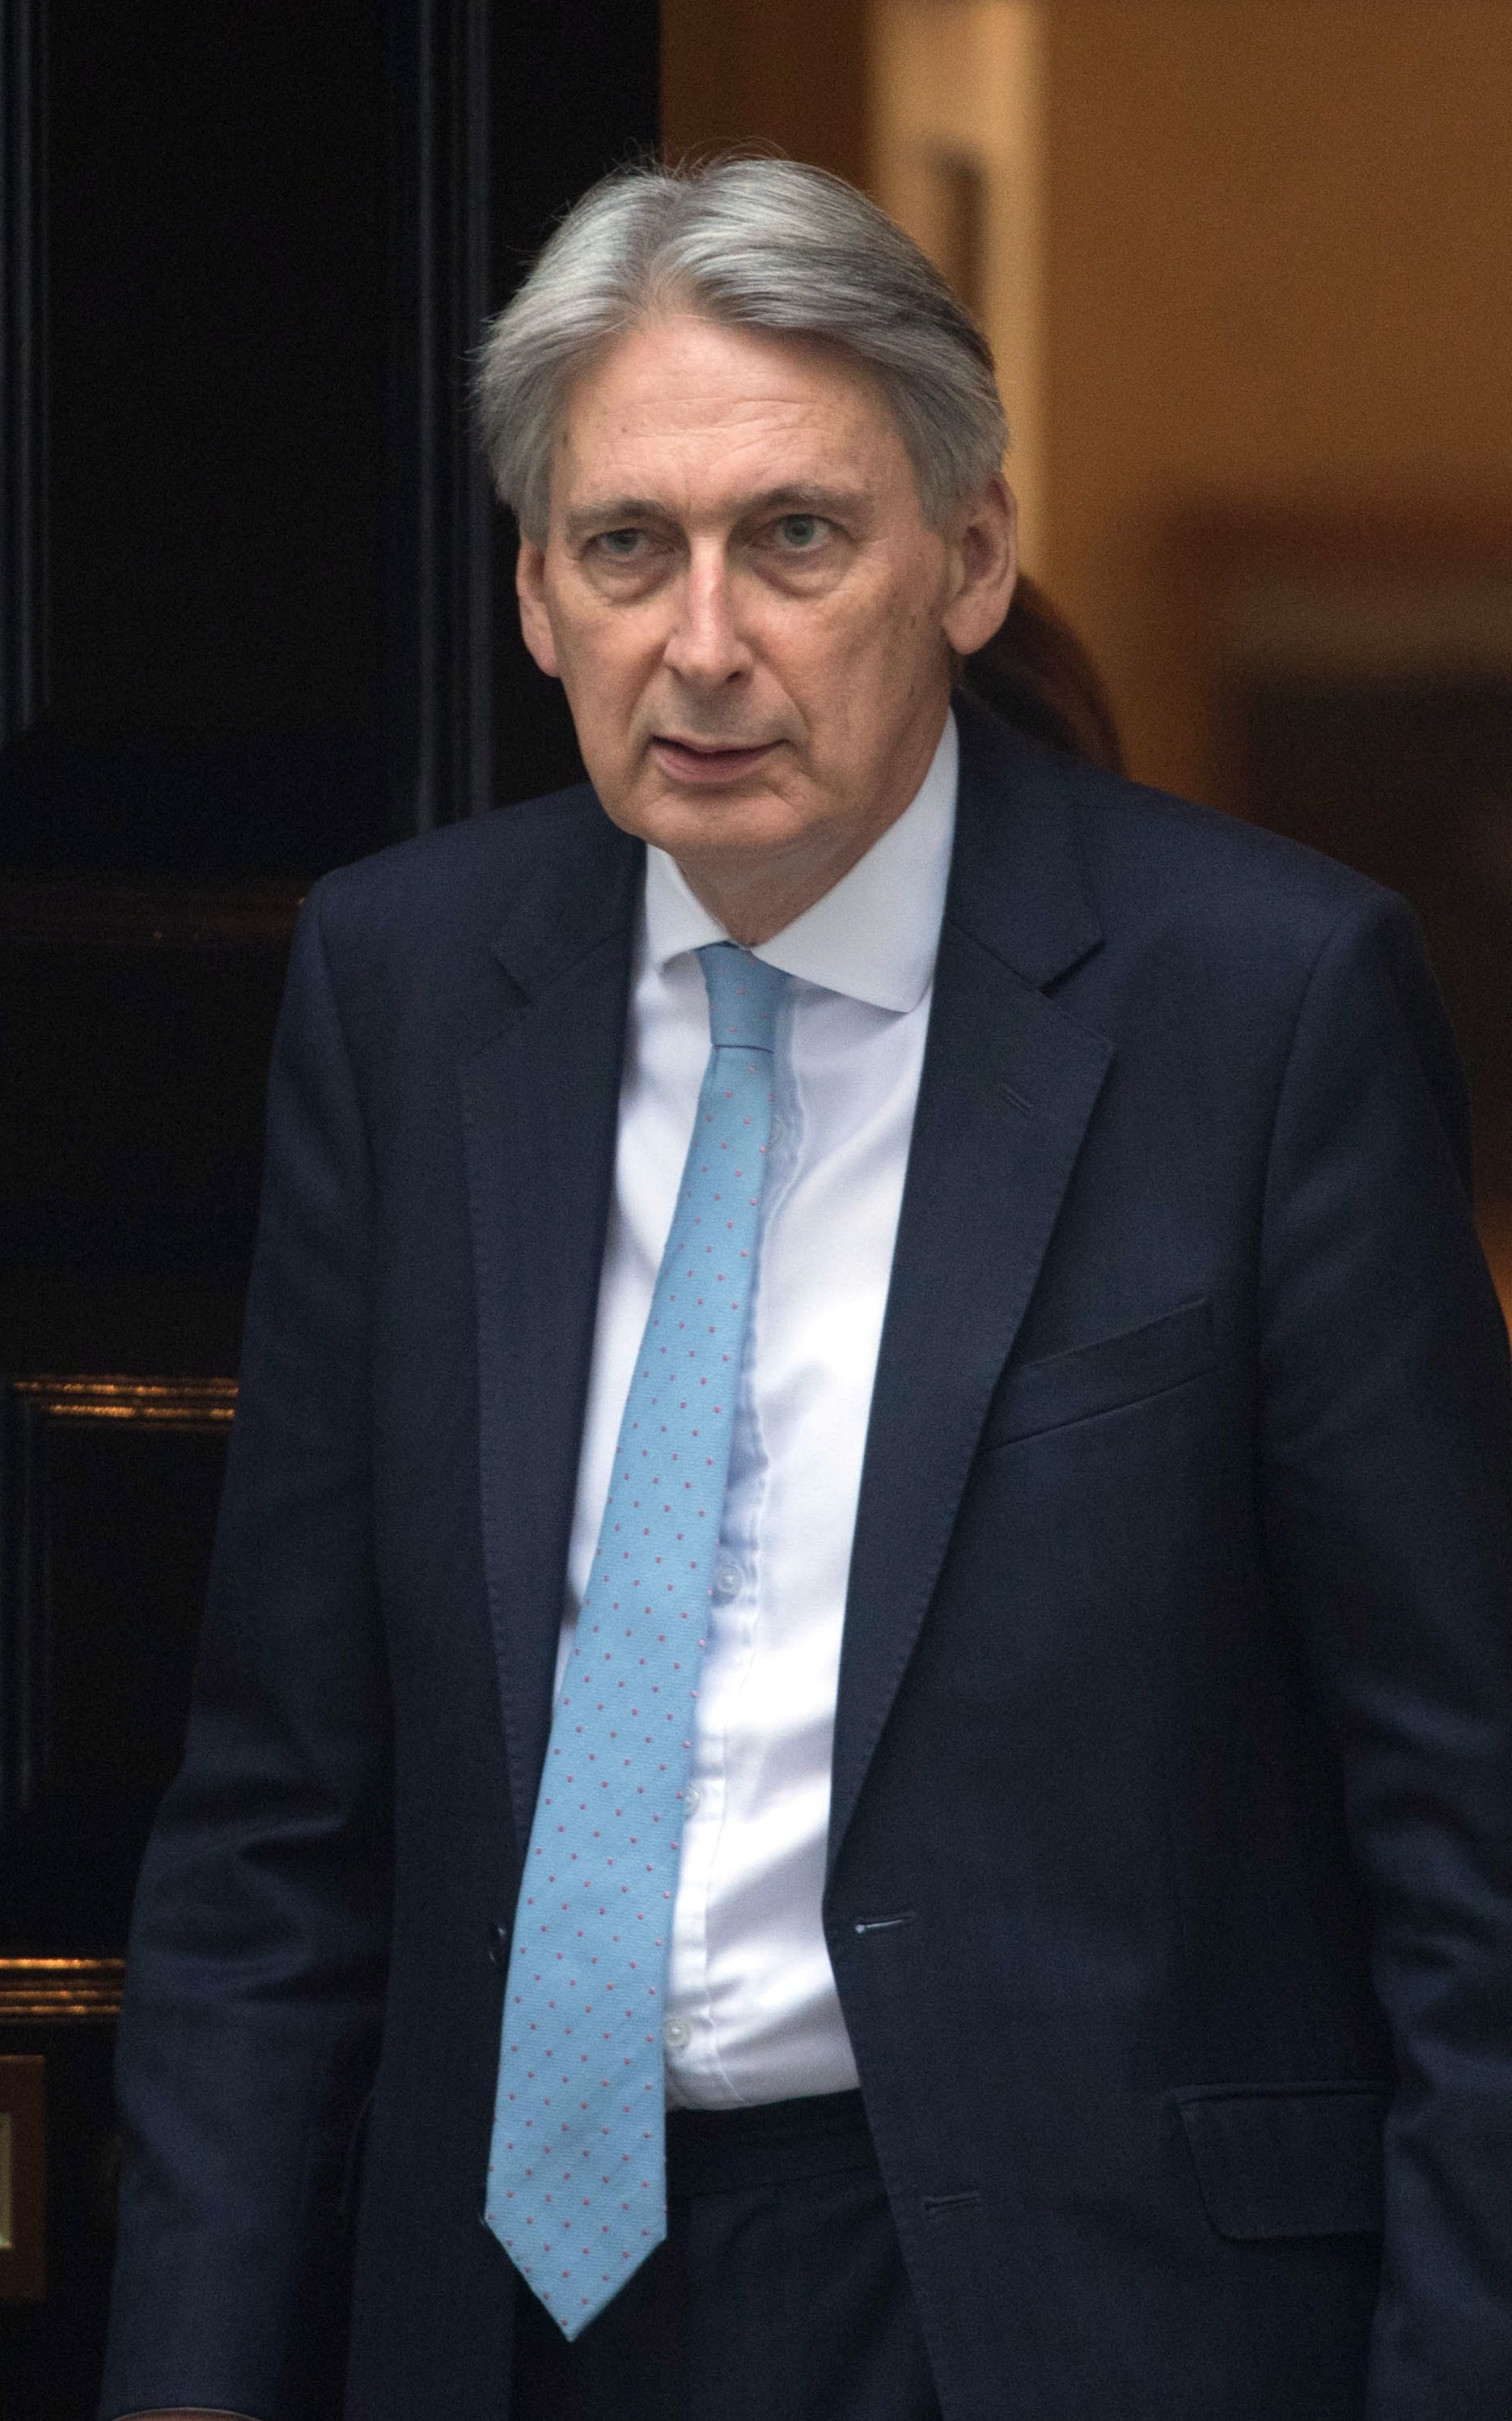 Philip Hammond Says Theresa May's Brexit Deal Is Better Than Staying In The